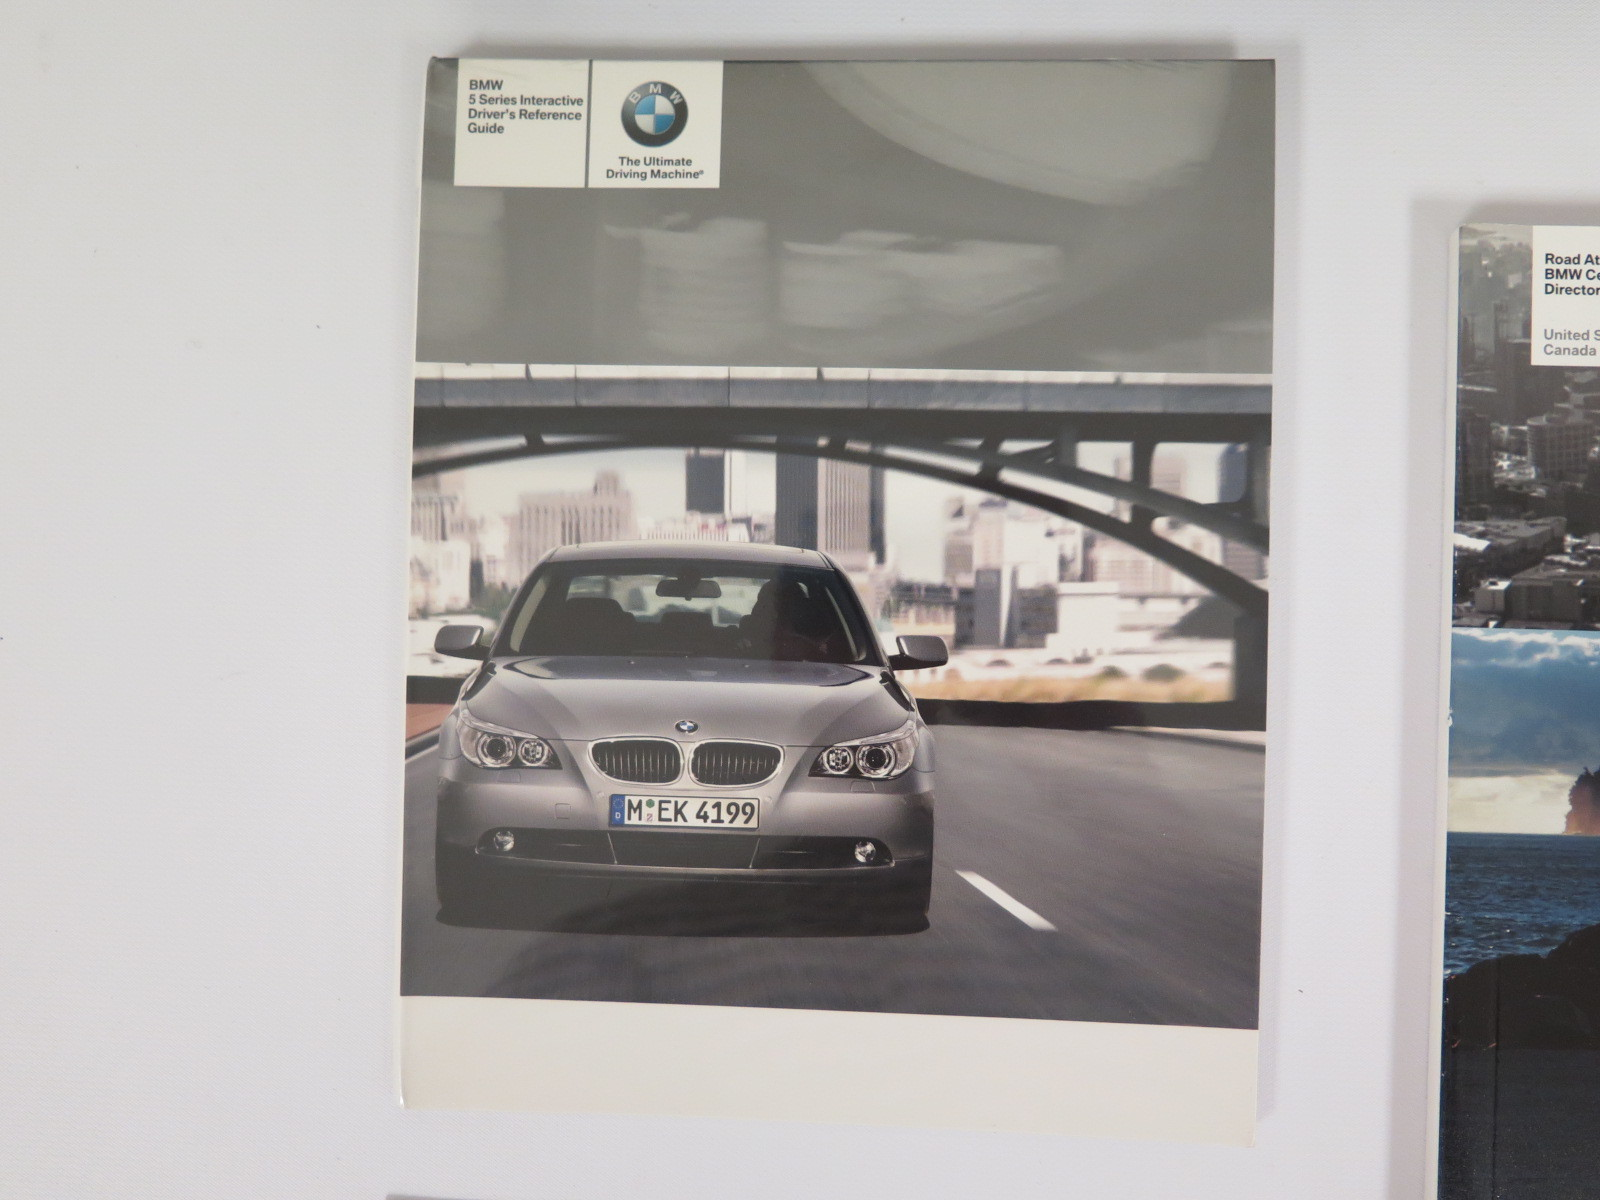 2005 bmw 5 series 525i 530i 545i owners manual book bashful yak rh bashfulyak com 2007 BMW 5 Series 2006 BMW 5 Series